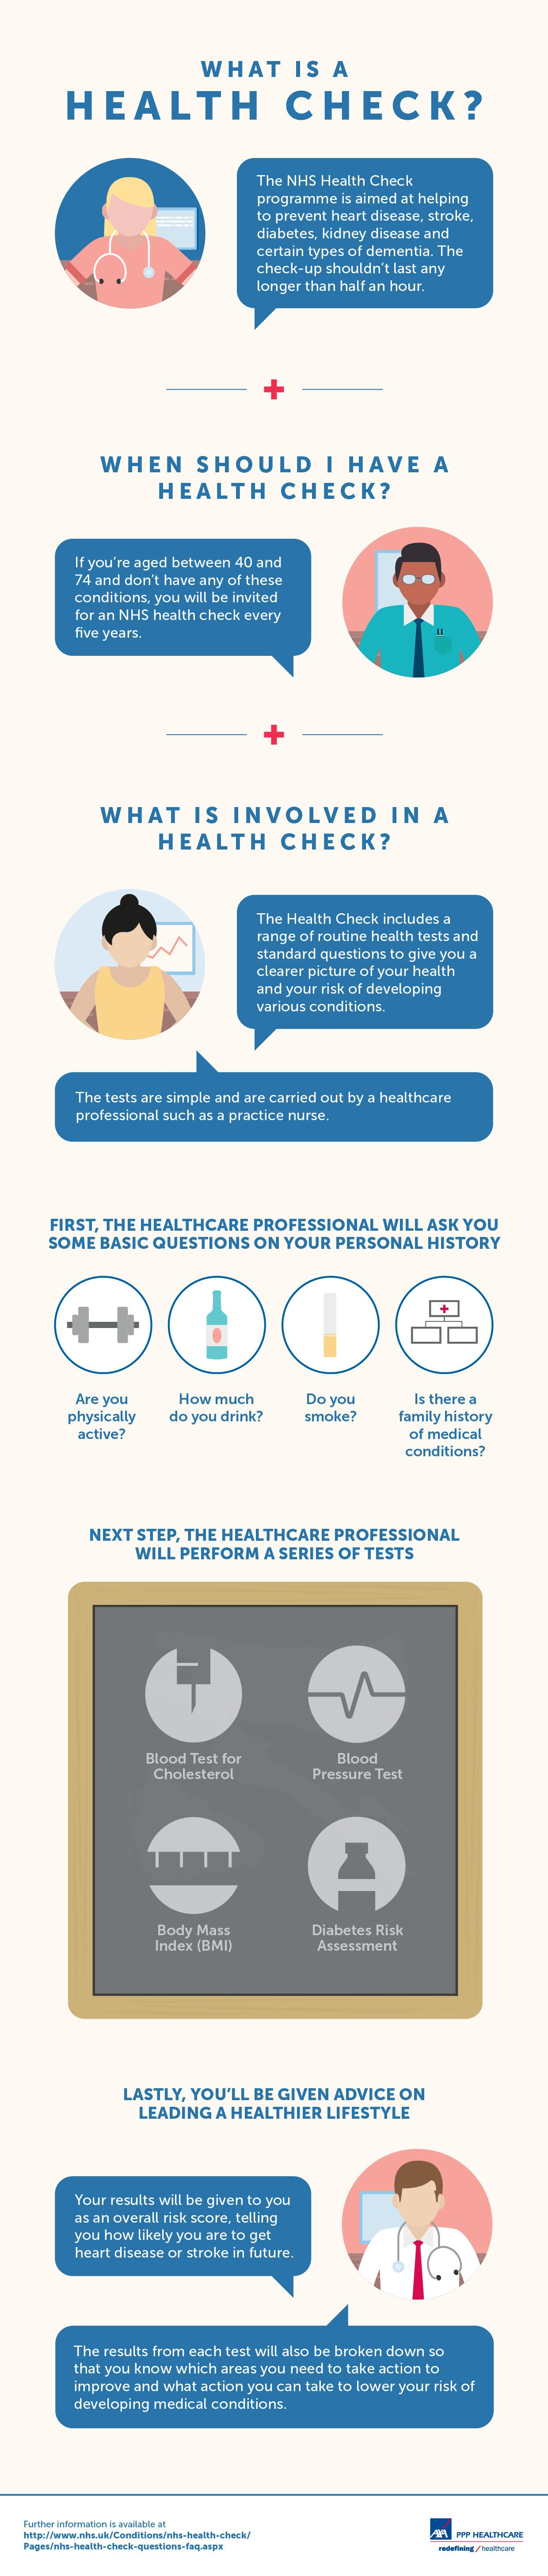 health check infographic